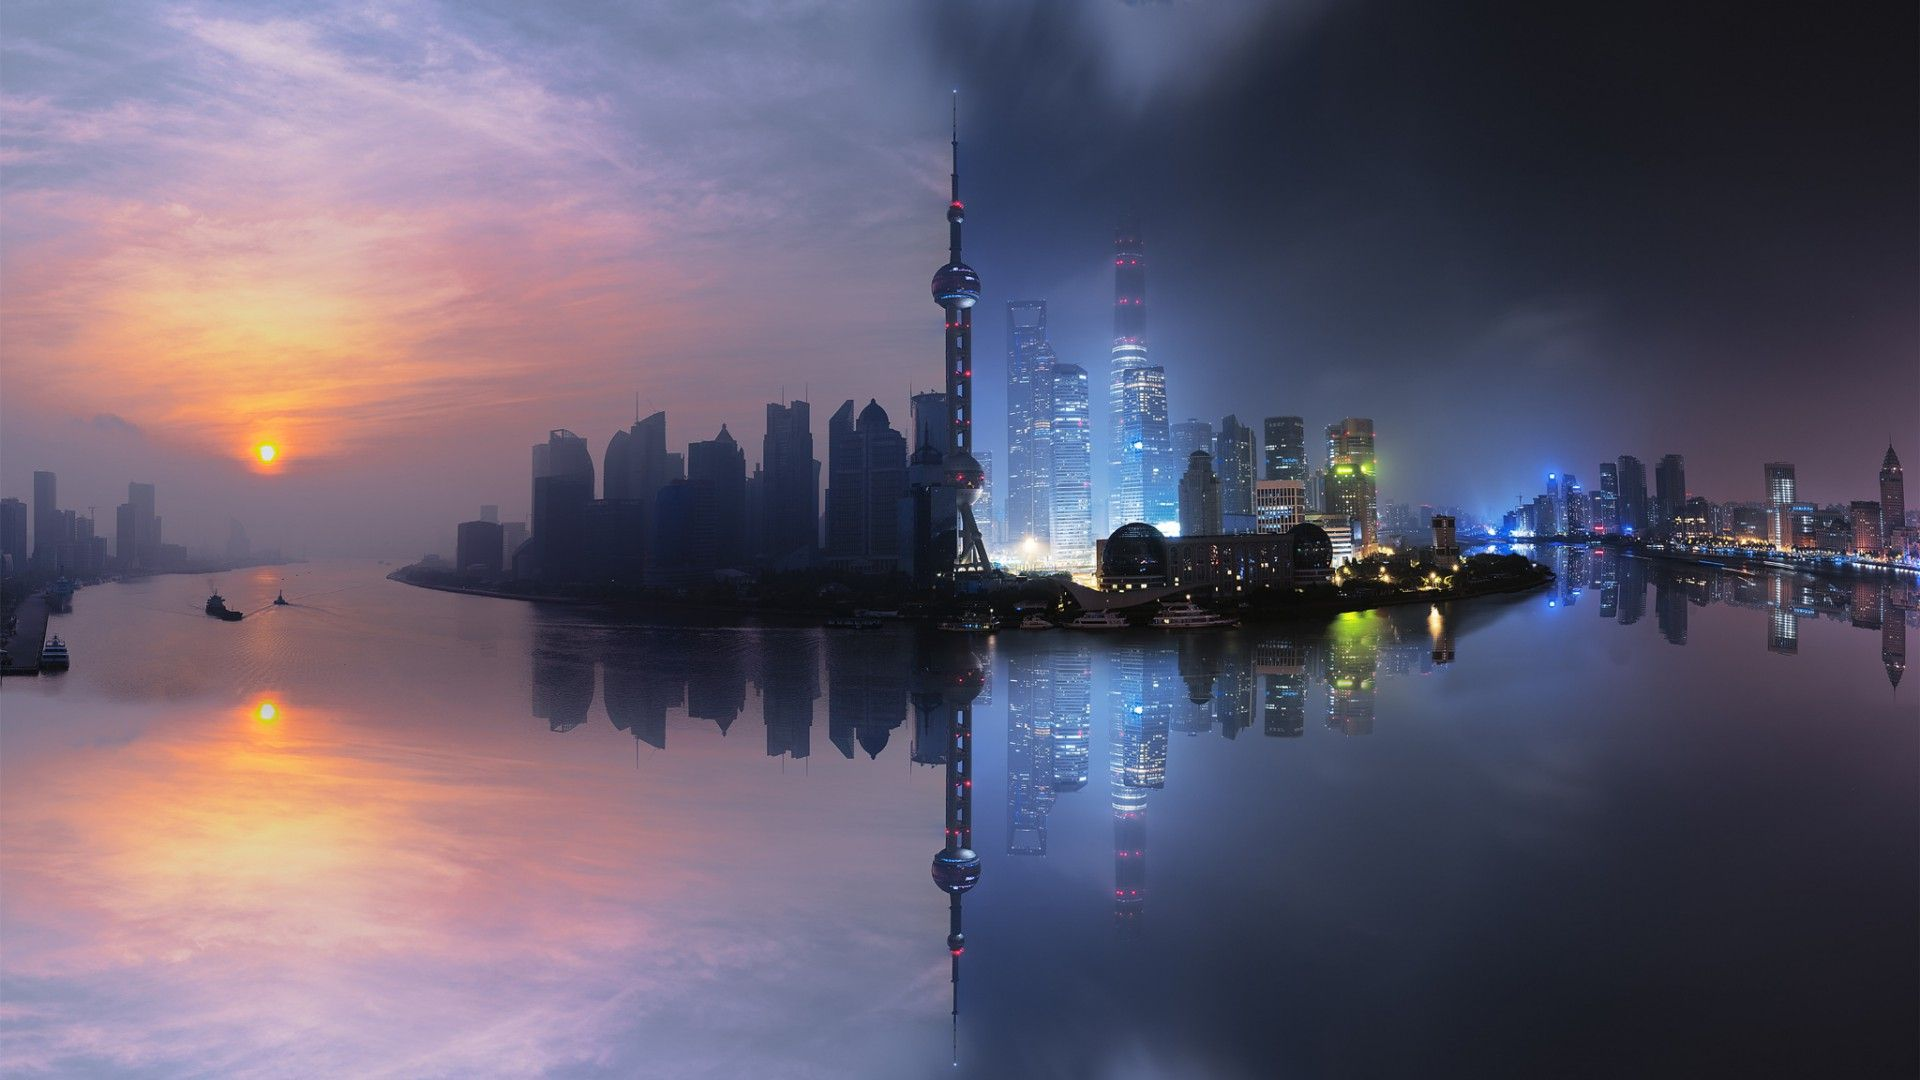 Shanghai Day And Night [1920X1080] Need #Iphone #6S #Plus #Wallpaper